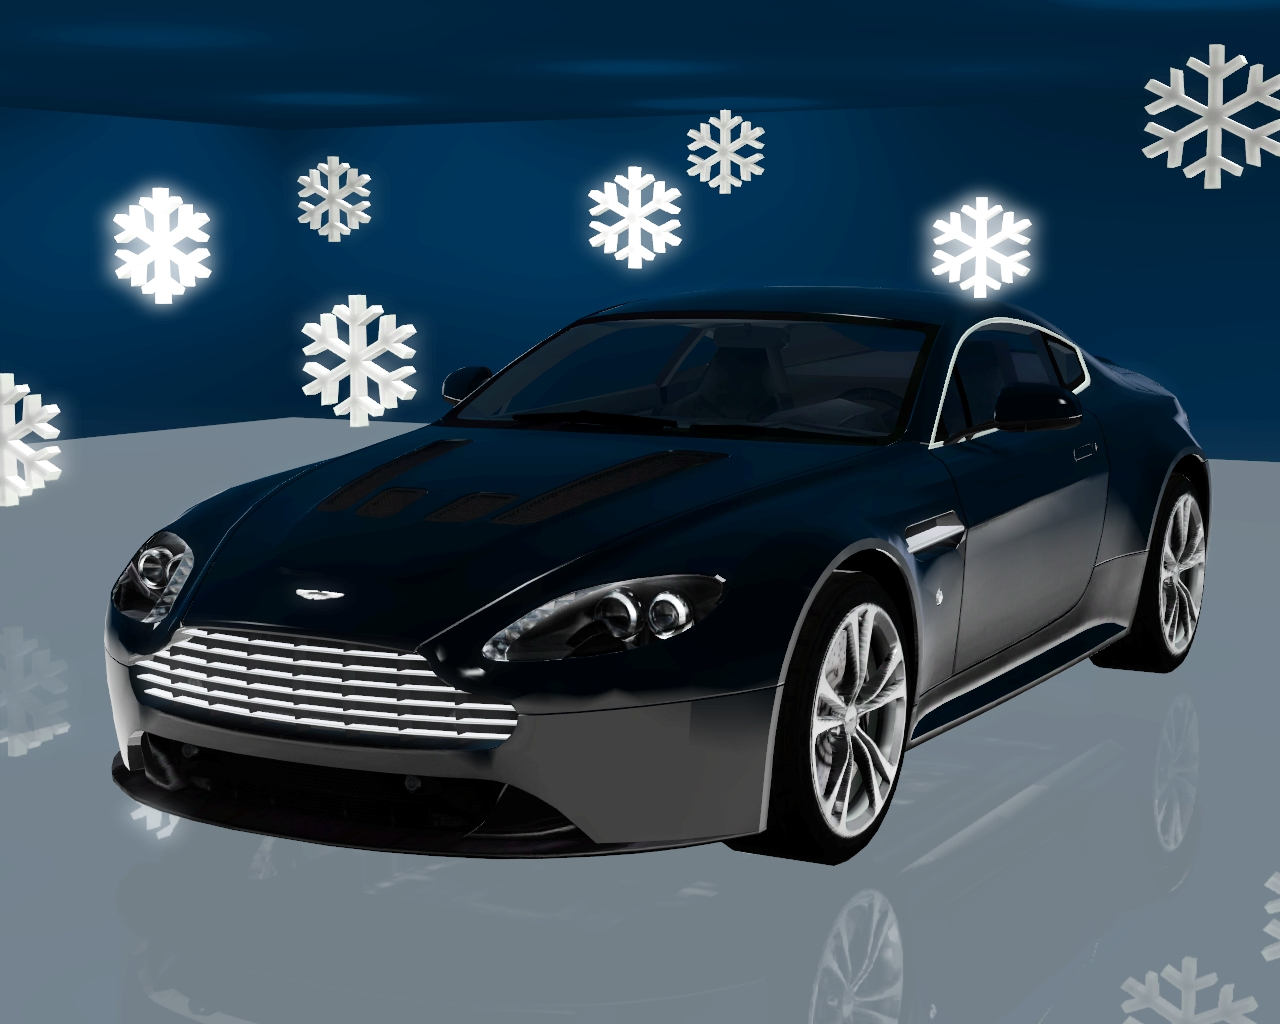 my sims 3 blog 2011 aston martin v12 vantage by fresh prince. Cars Review. Best American Auto & Cars Review